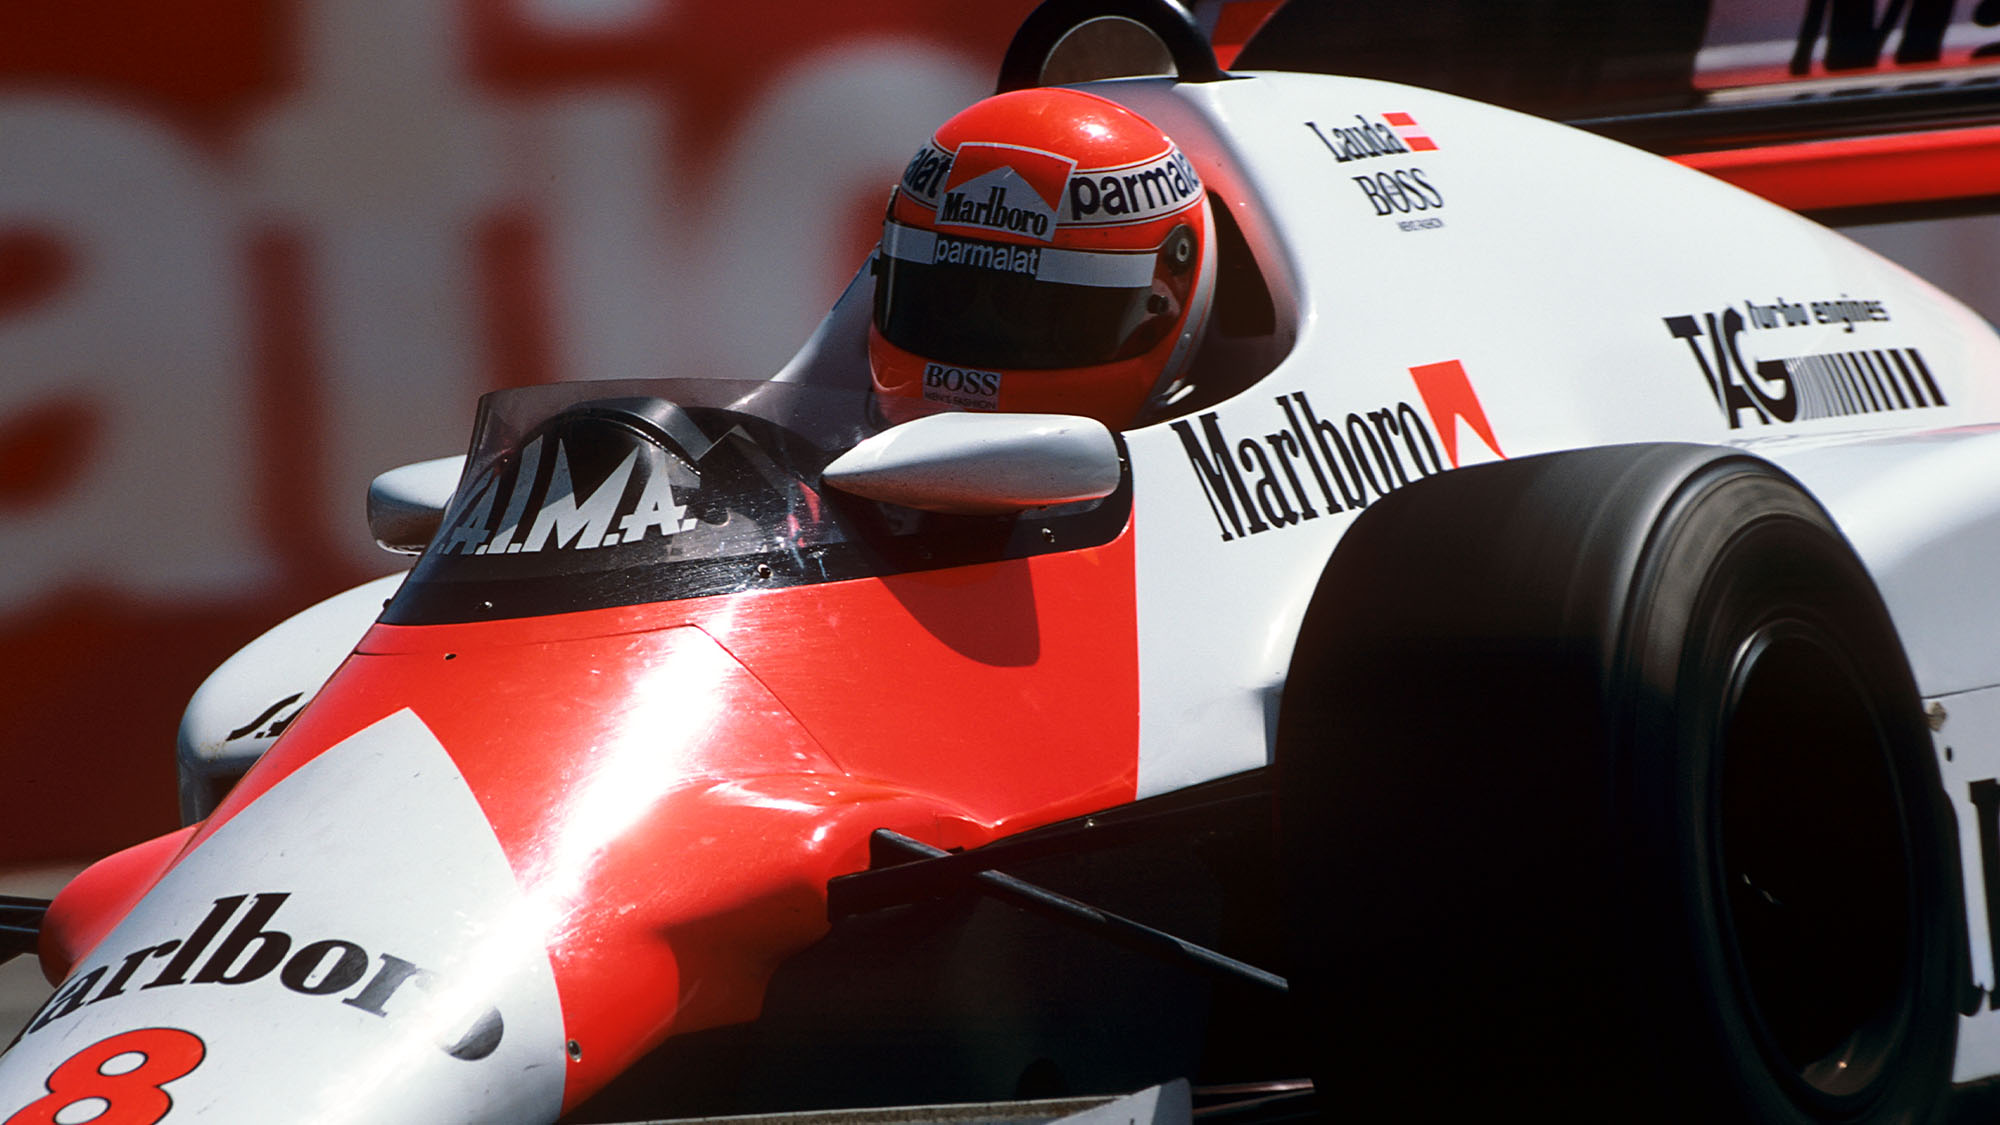 Niki Lauda, McLaren-TAG MP4/2, Grand Prix of South Africa, Kyalami, 07 April 1984. (Photo by Paul-Henri Cahier/Getty Images)